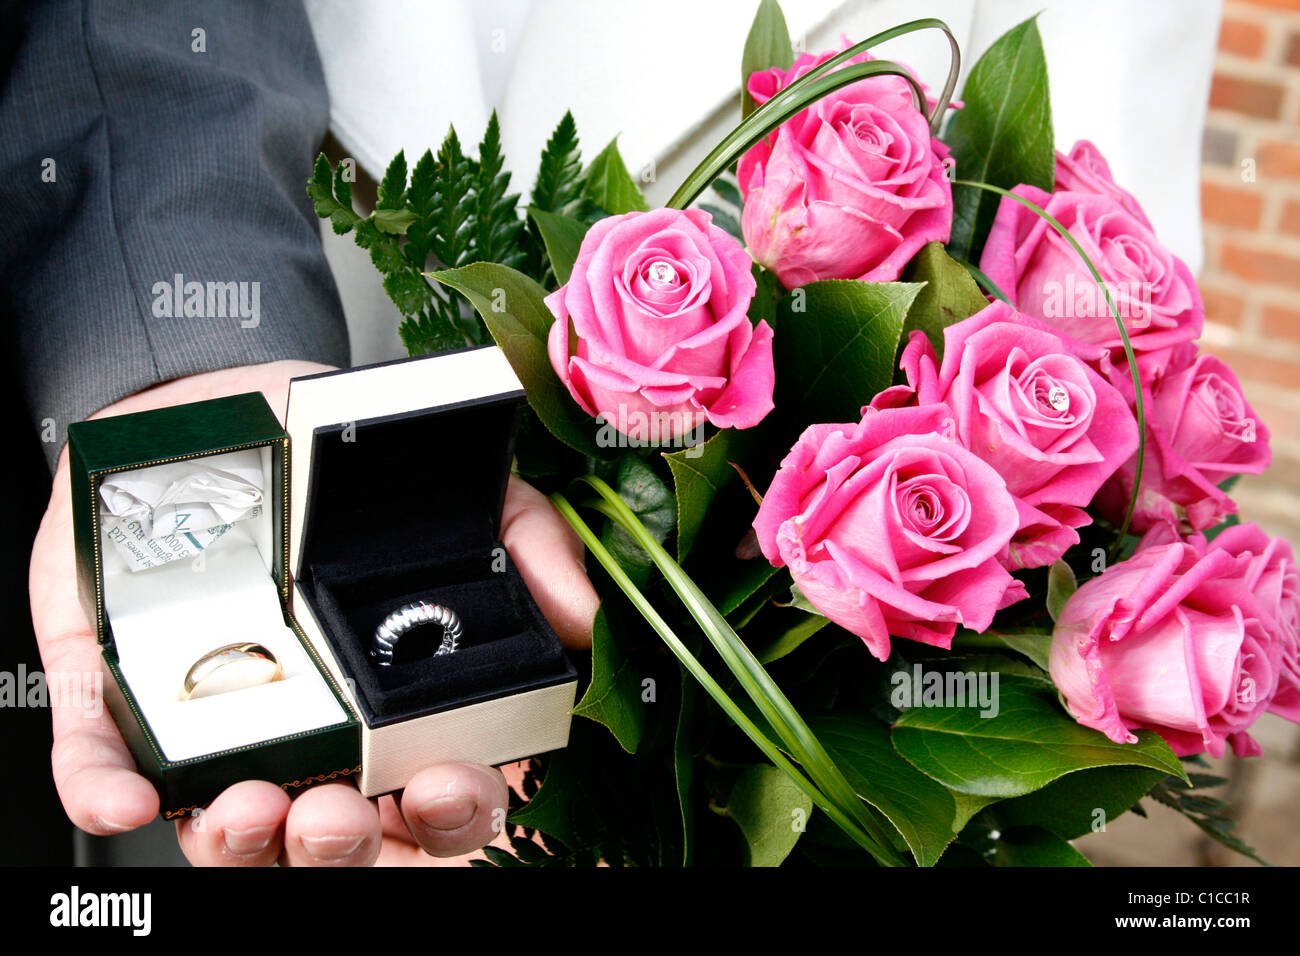 Wedding Rings On Display Stock Photos & Wedding Rings On Display ...